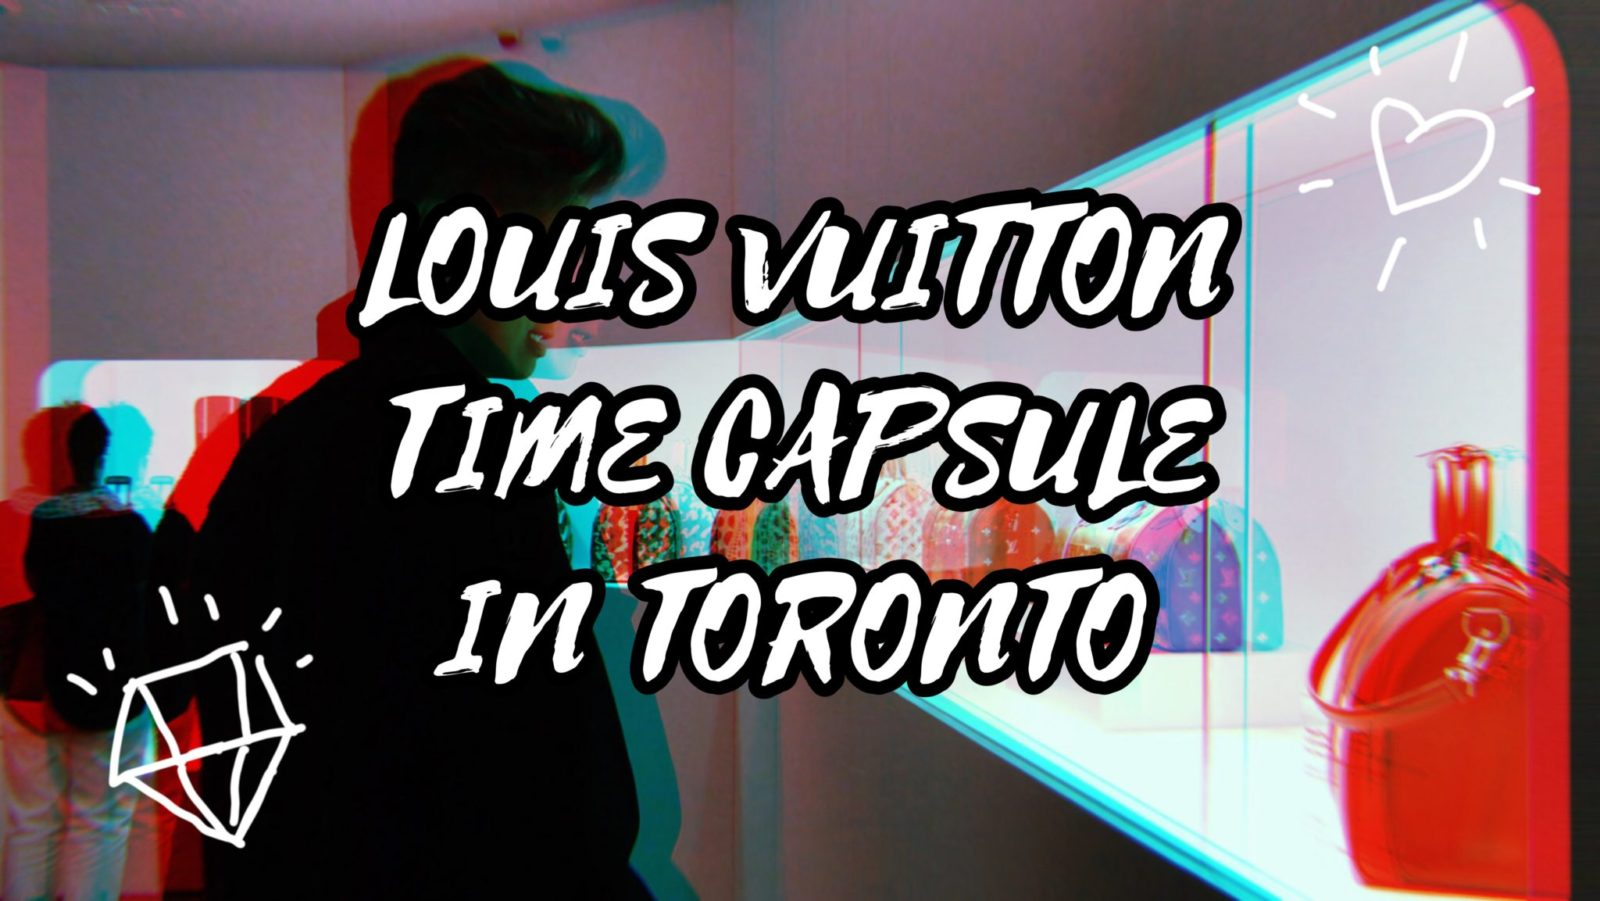 LOUIS VUITTON TIME CAPSULE IN TORONTO